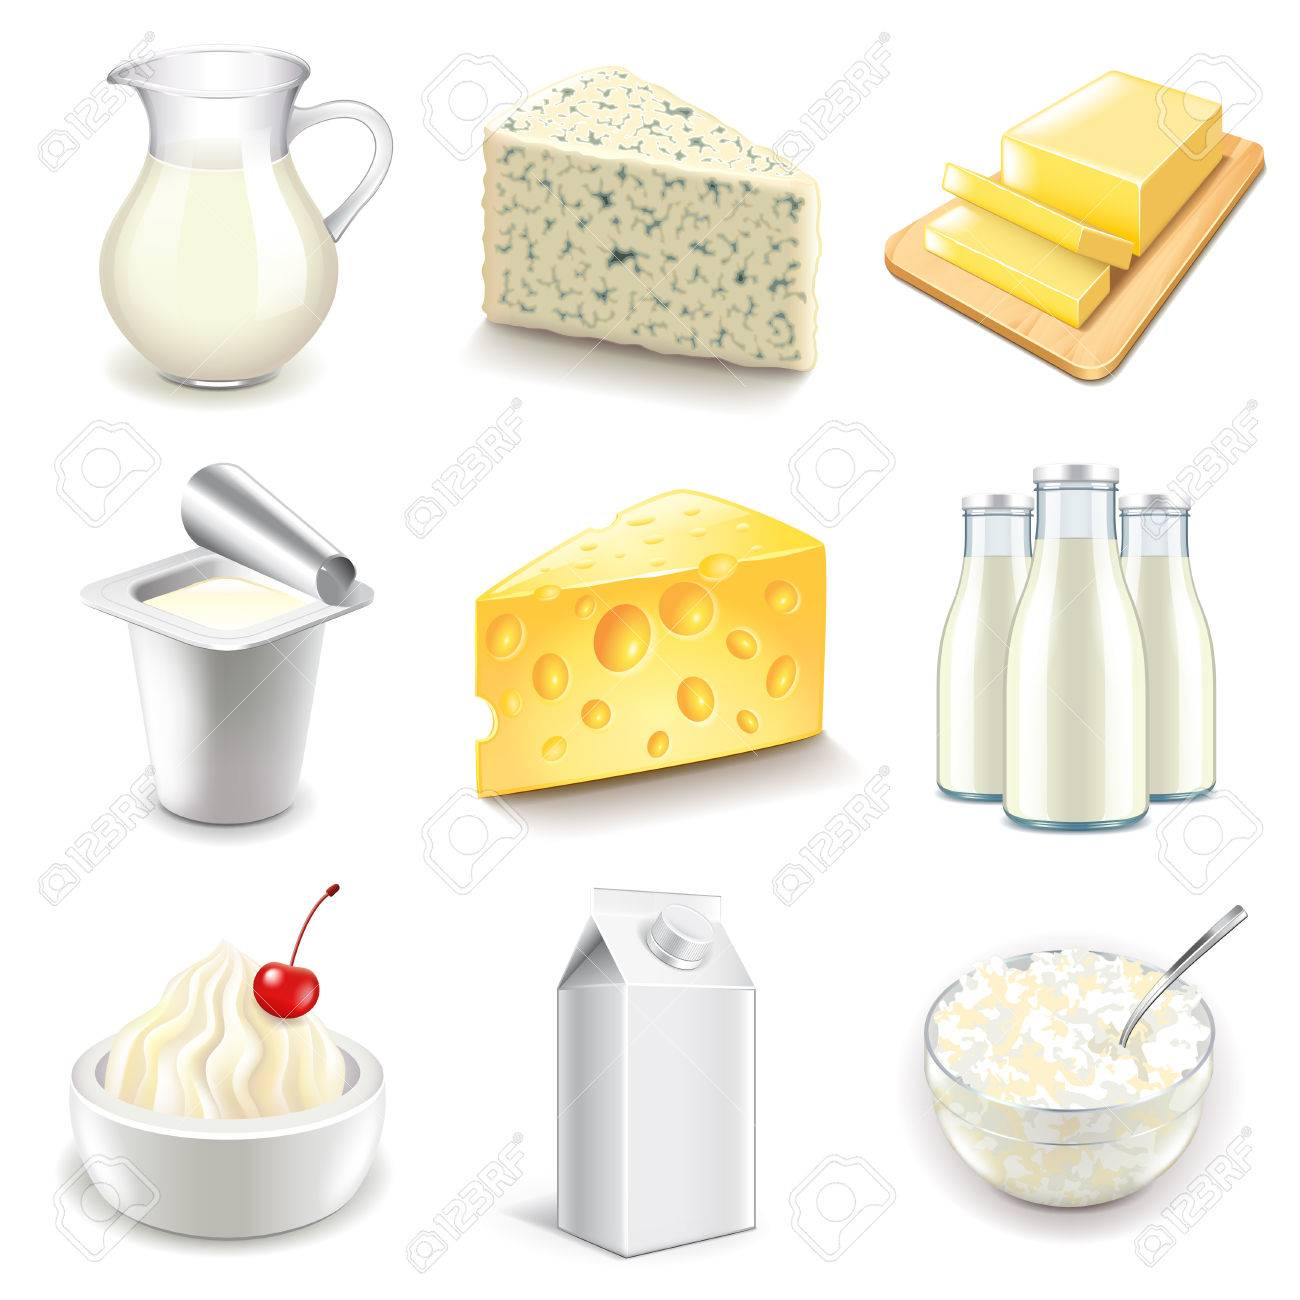 Dairy products icons detailed photo realistic vector set - 51987860